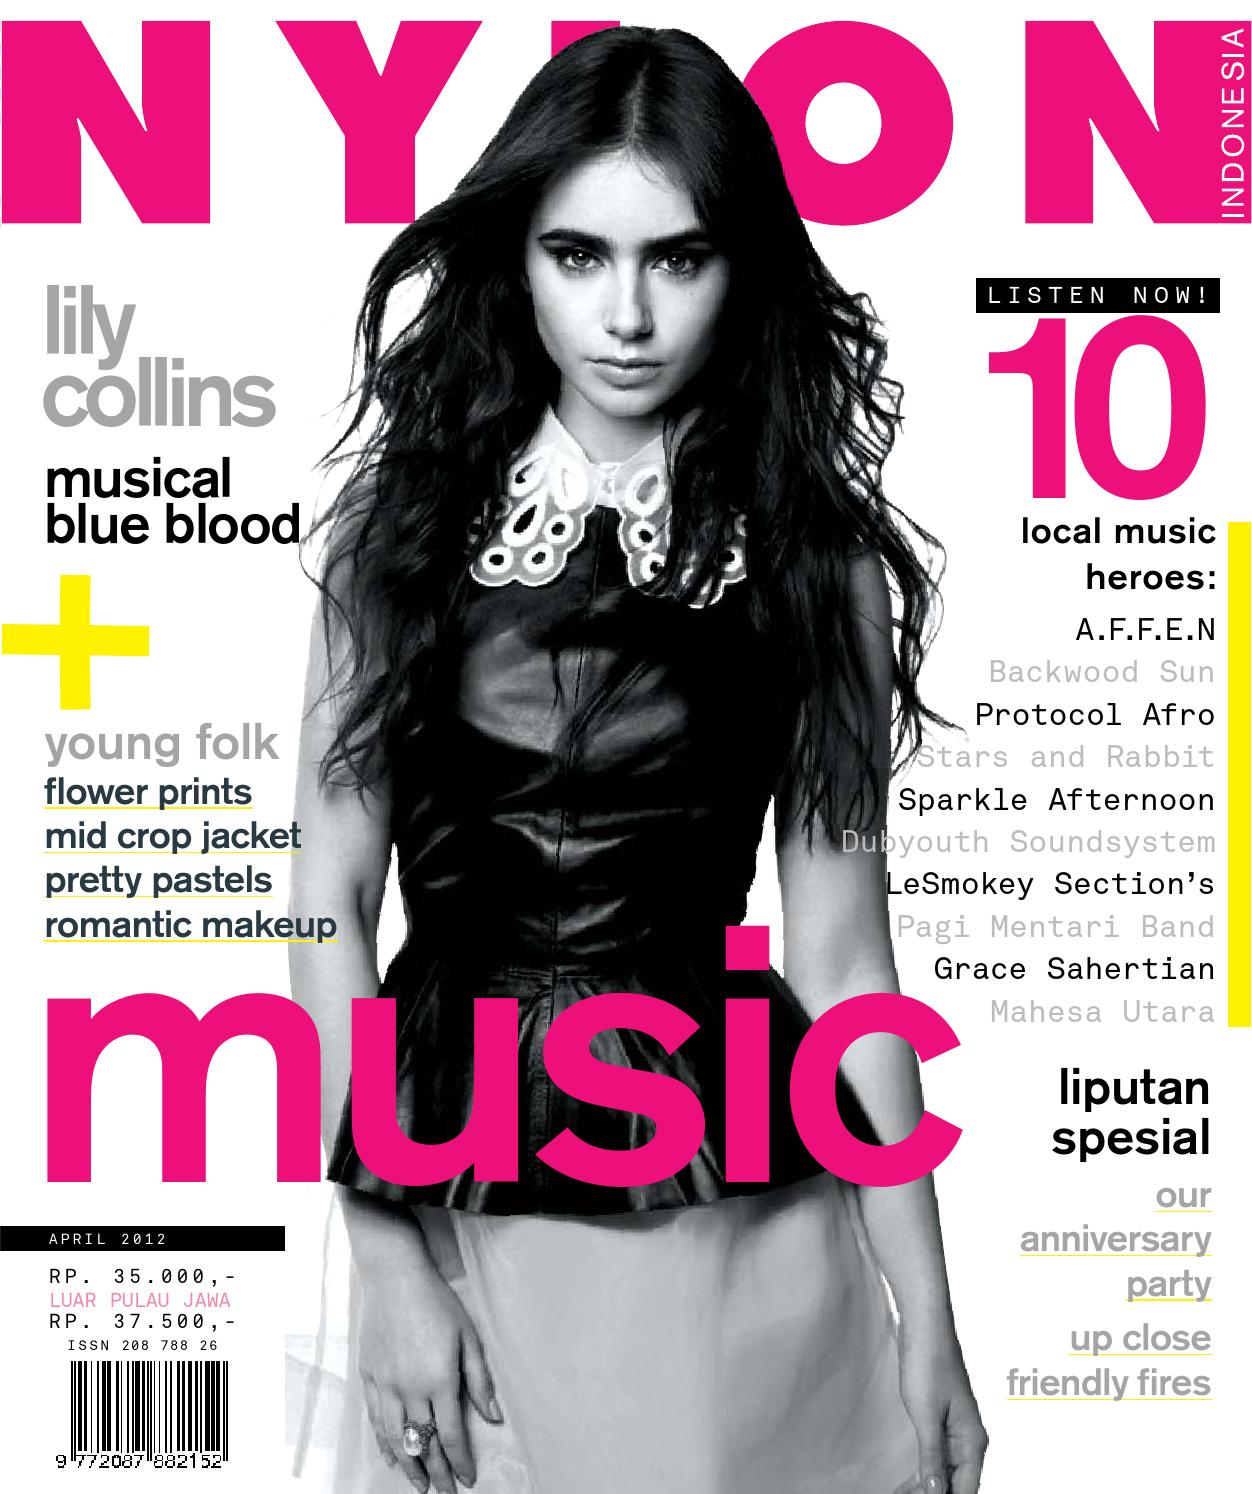 NYLON Indonesia April 2012 By Haris Juniarto Issuu